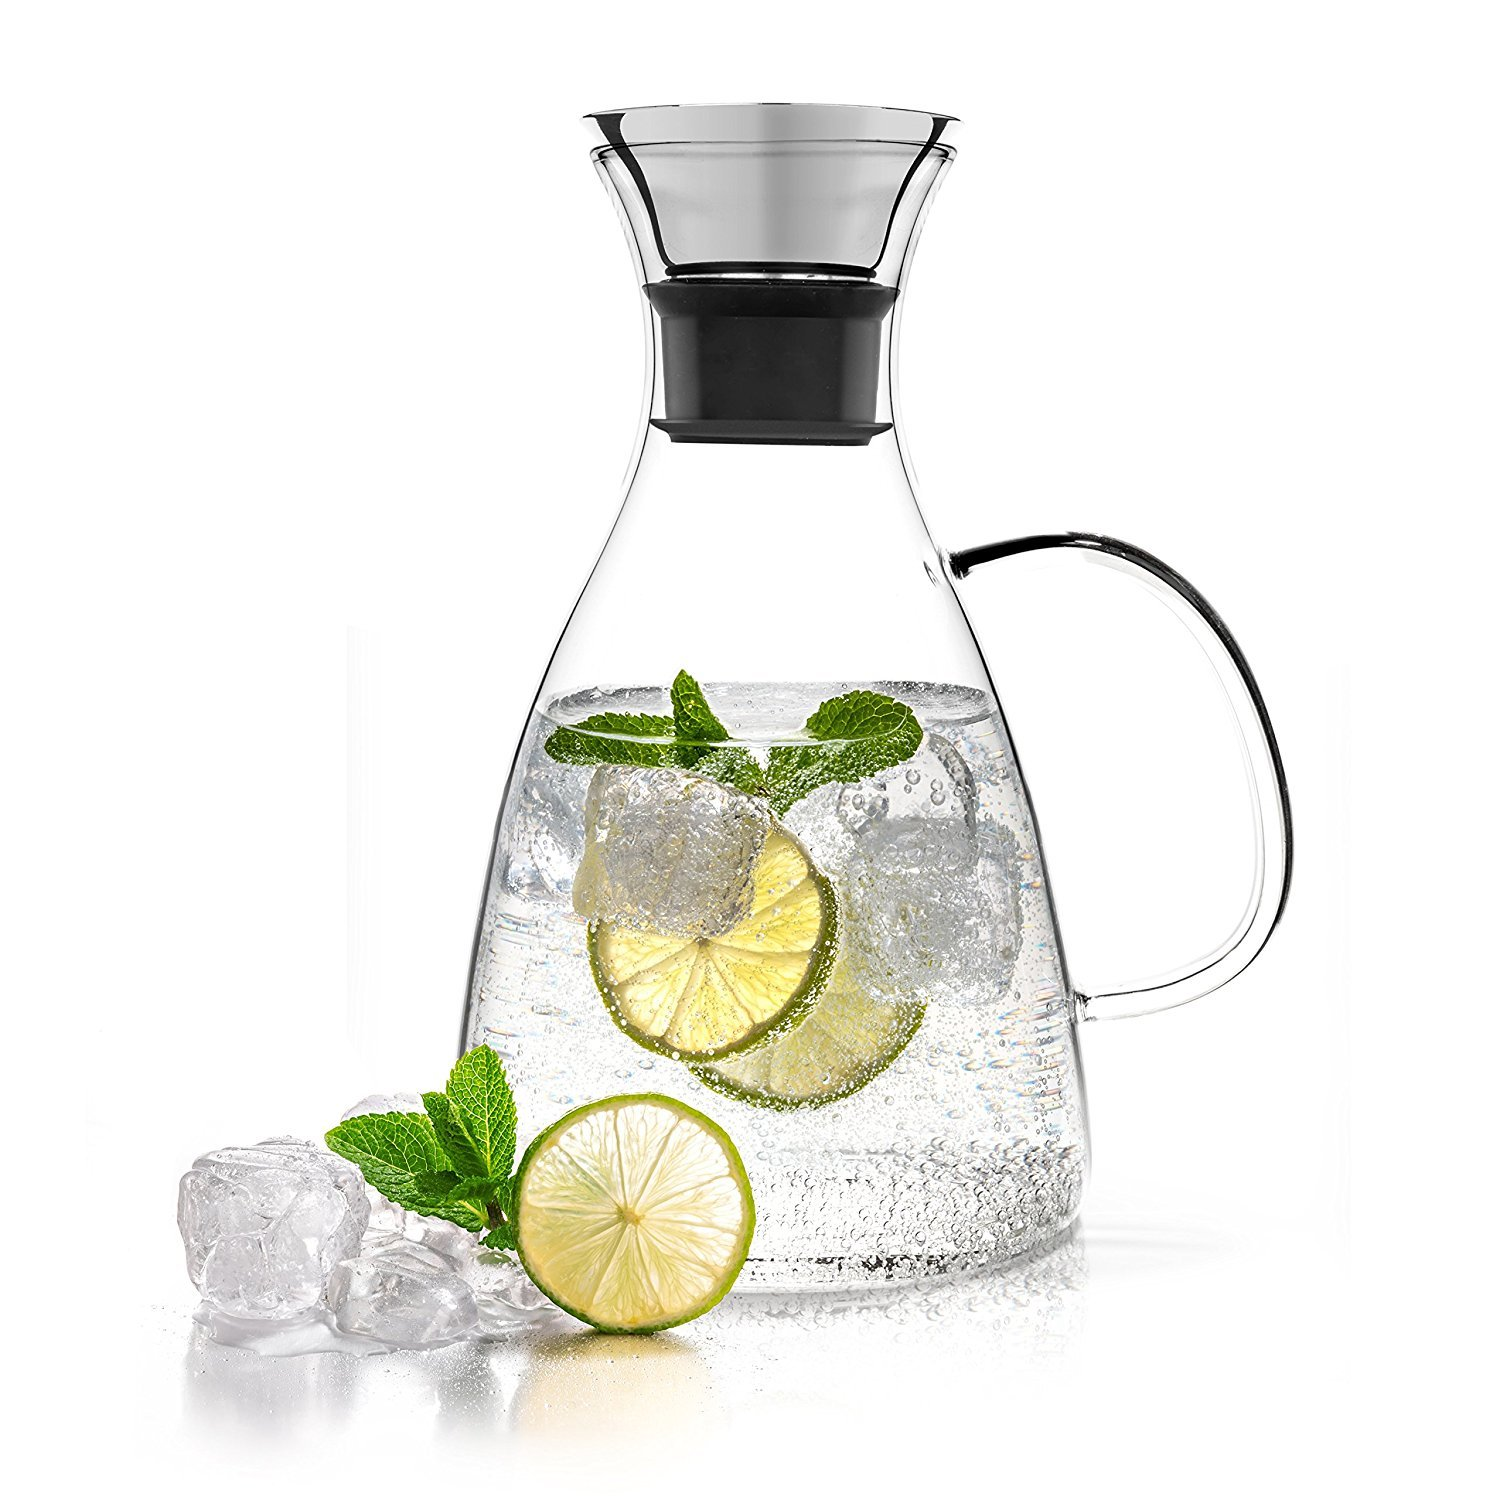 ONEISALL GYBL436 Glass Carafe with Stainless Steel Flip-top Lid and Handle, Hot and Cold Glass Water Pitcher, Tea/Coffee Maker & Cafe, Iced Tea, Beverage Pitcher for Decanting and Serving Wine, 1500ML by oneisall